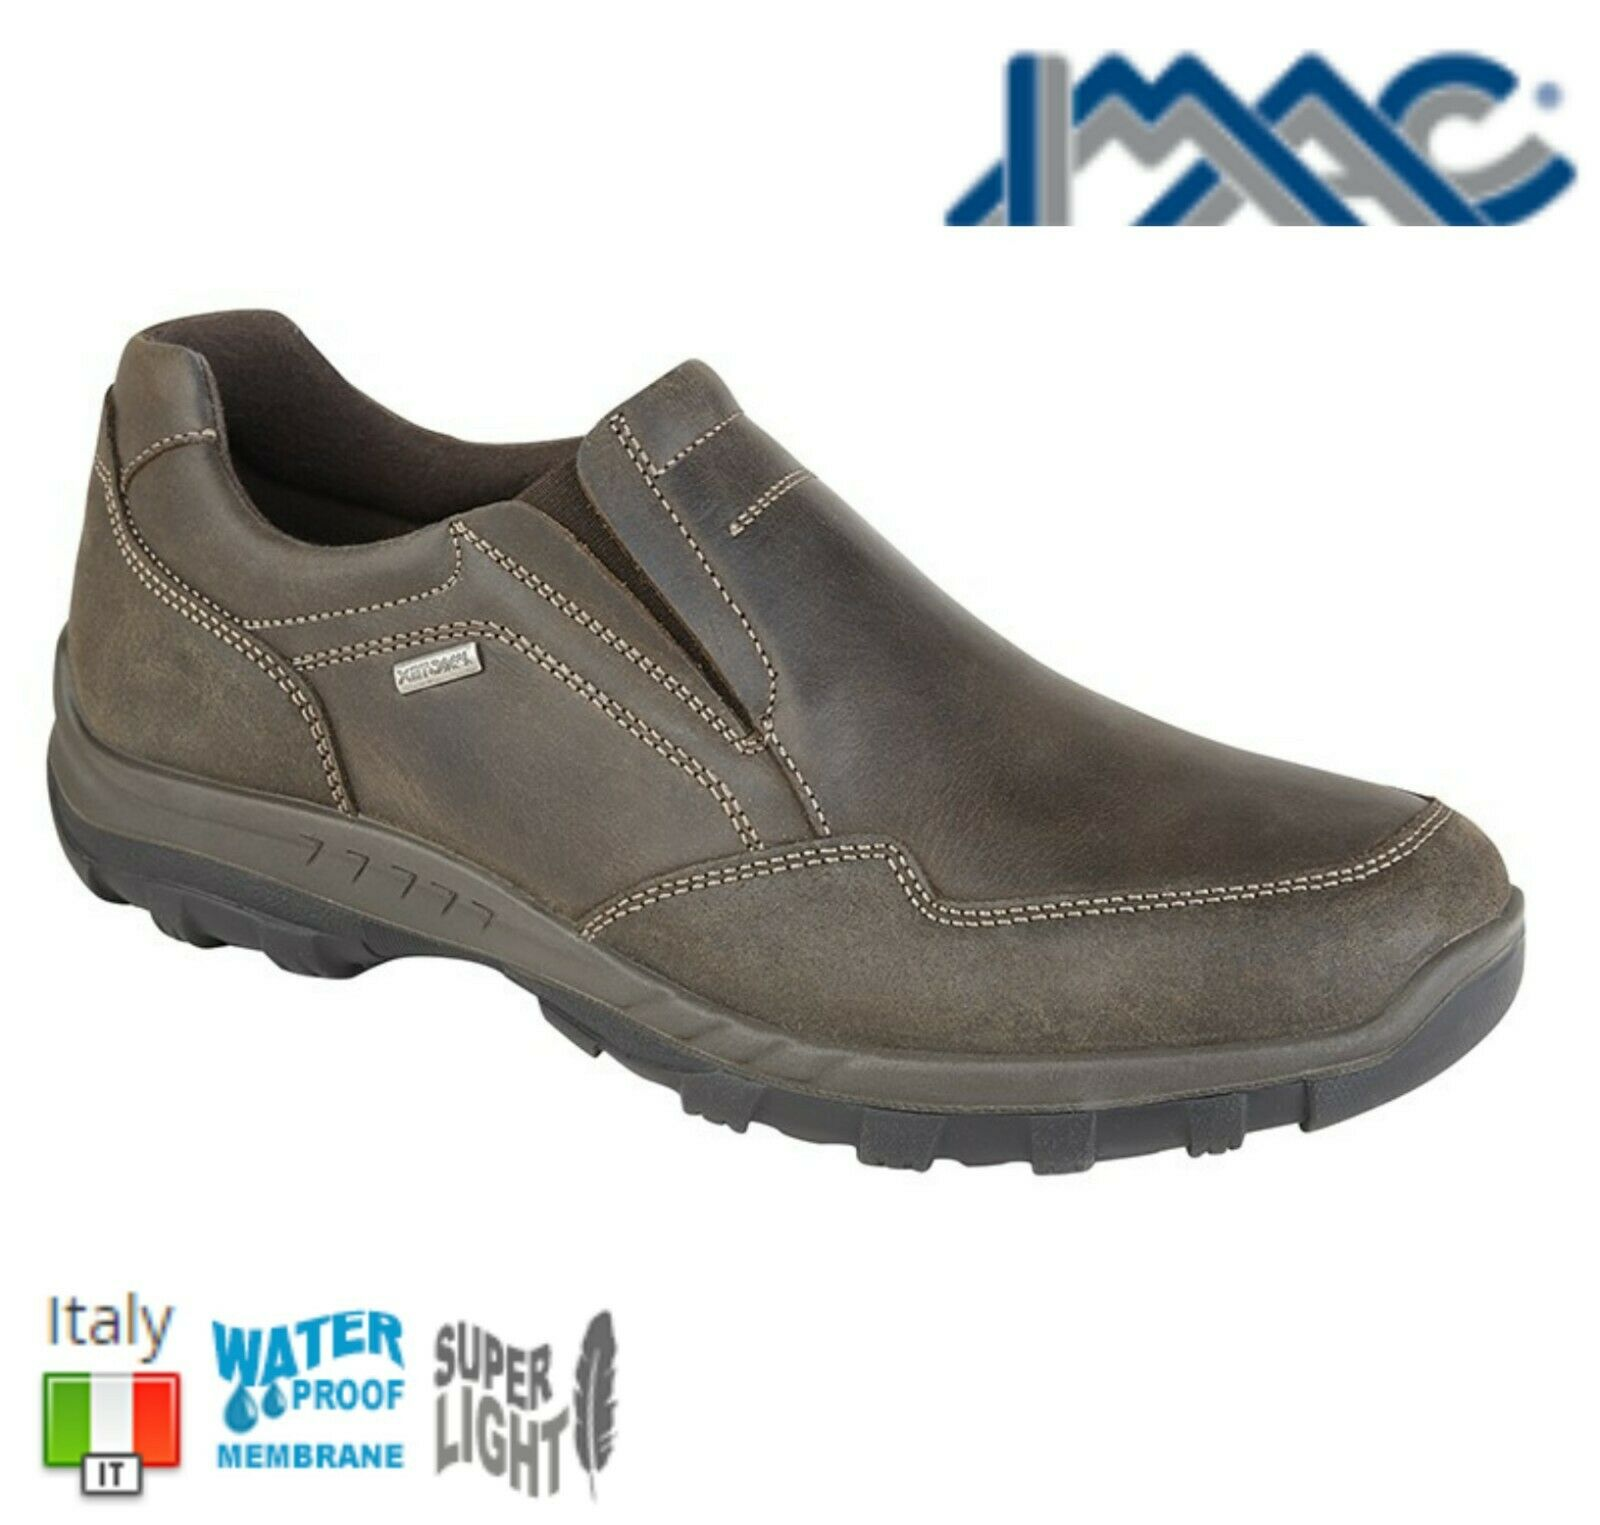 IMAC MENS WATERPROOF - Brown Leather Casual Slip On shoes - Sizes 7 8 9 10 11 12